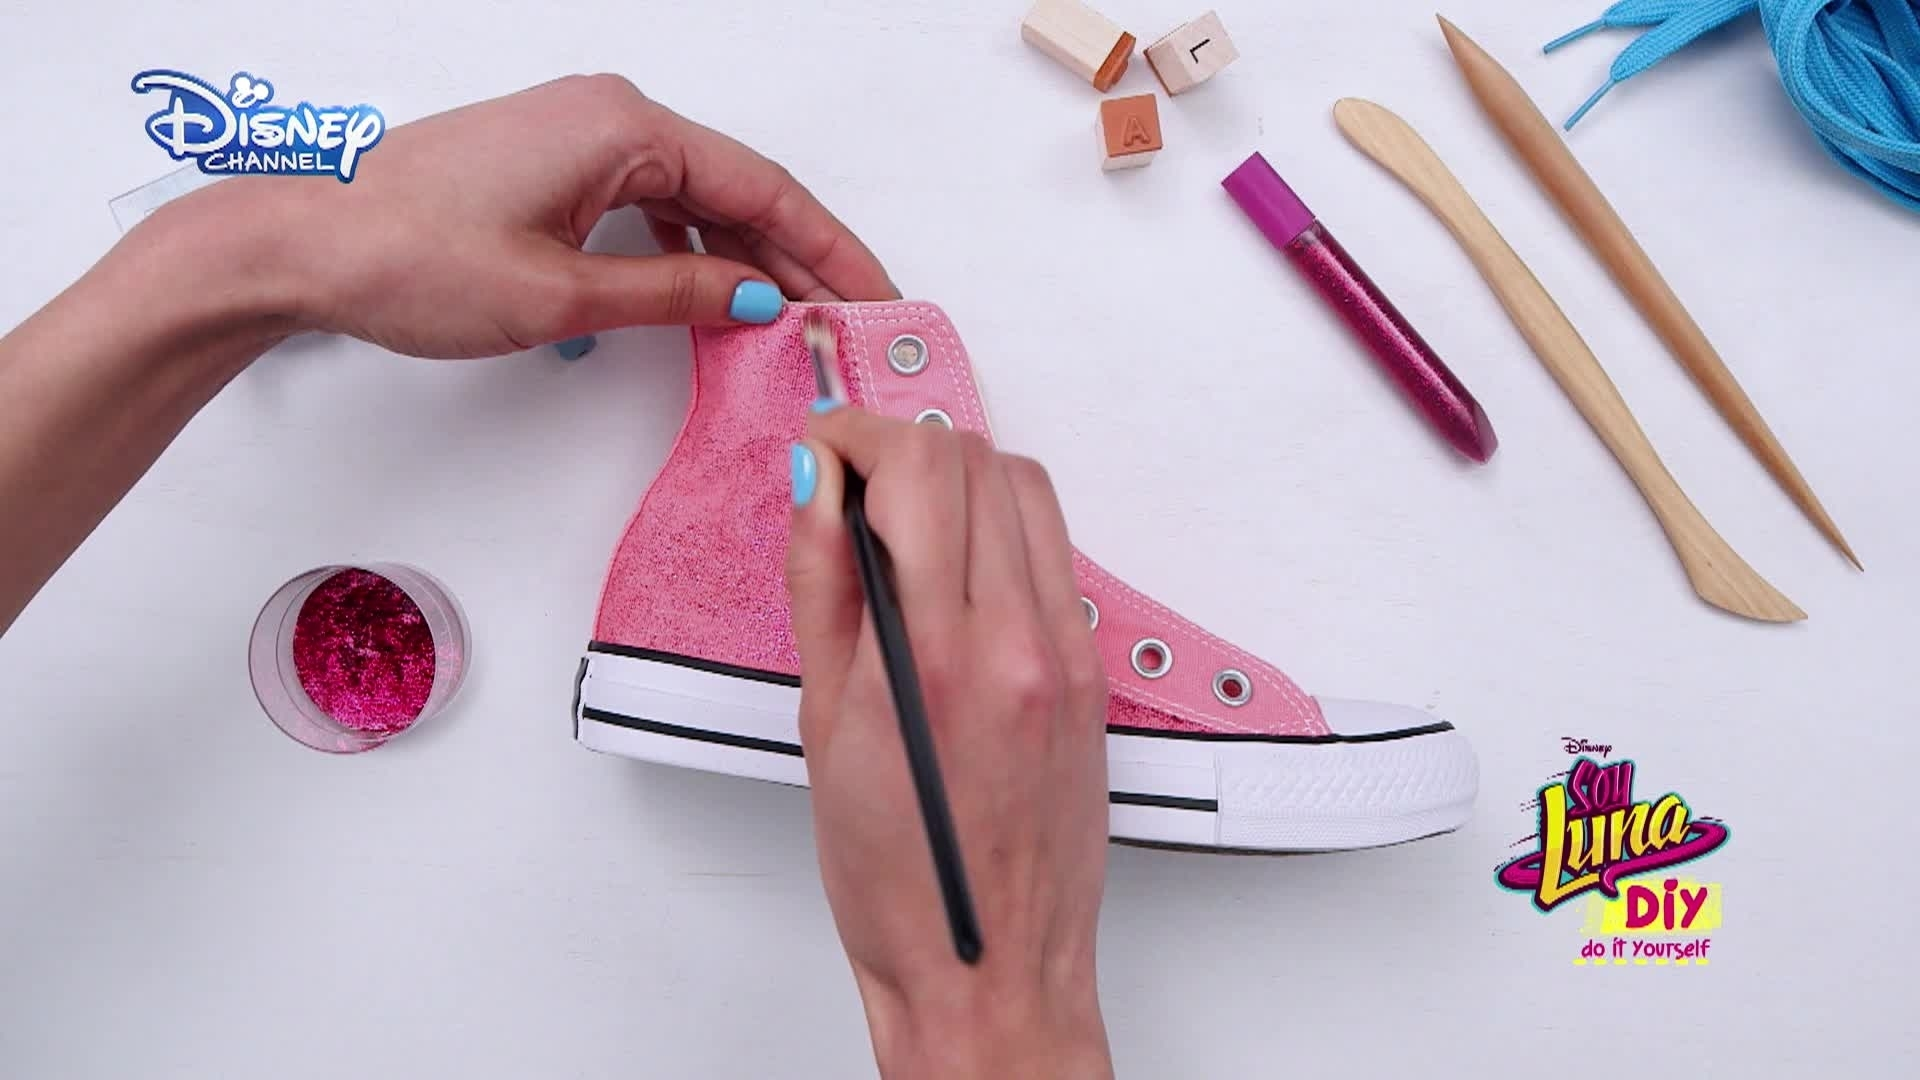 Soy Luna DIY: Fashion & Beauty - Zapatos lunatizados